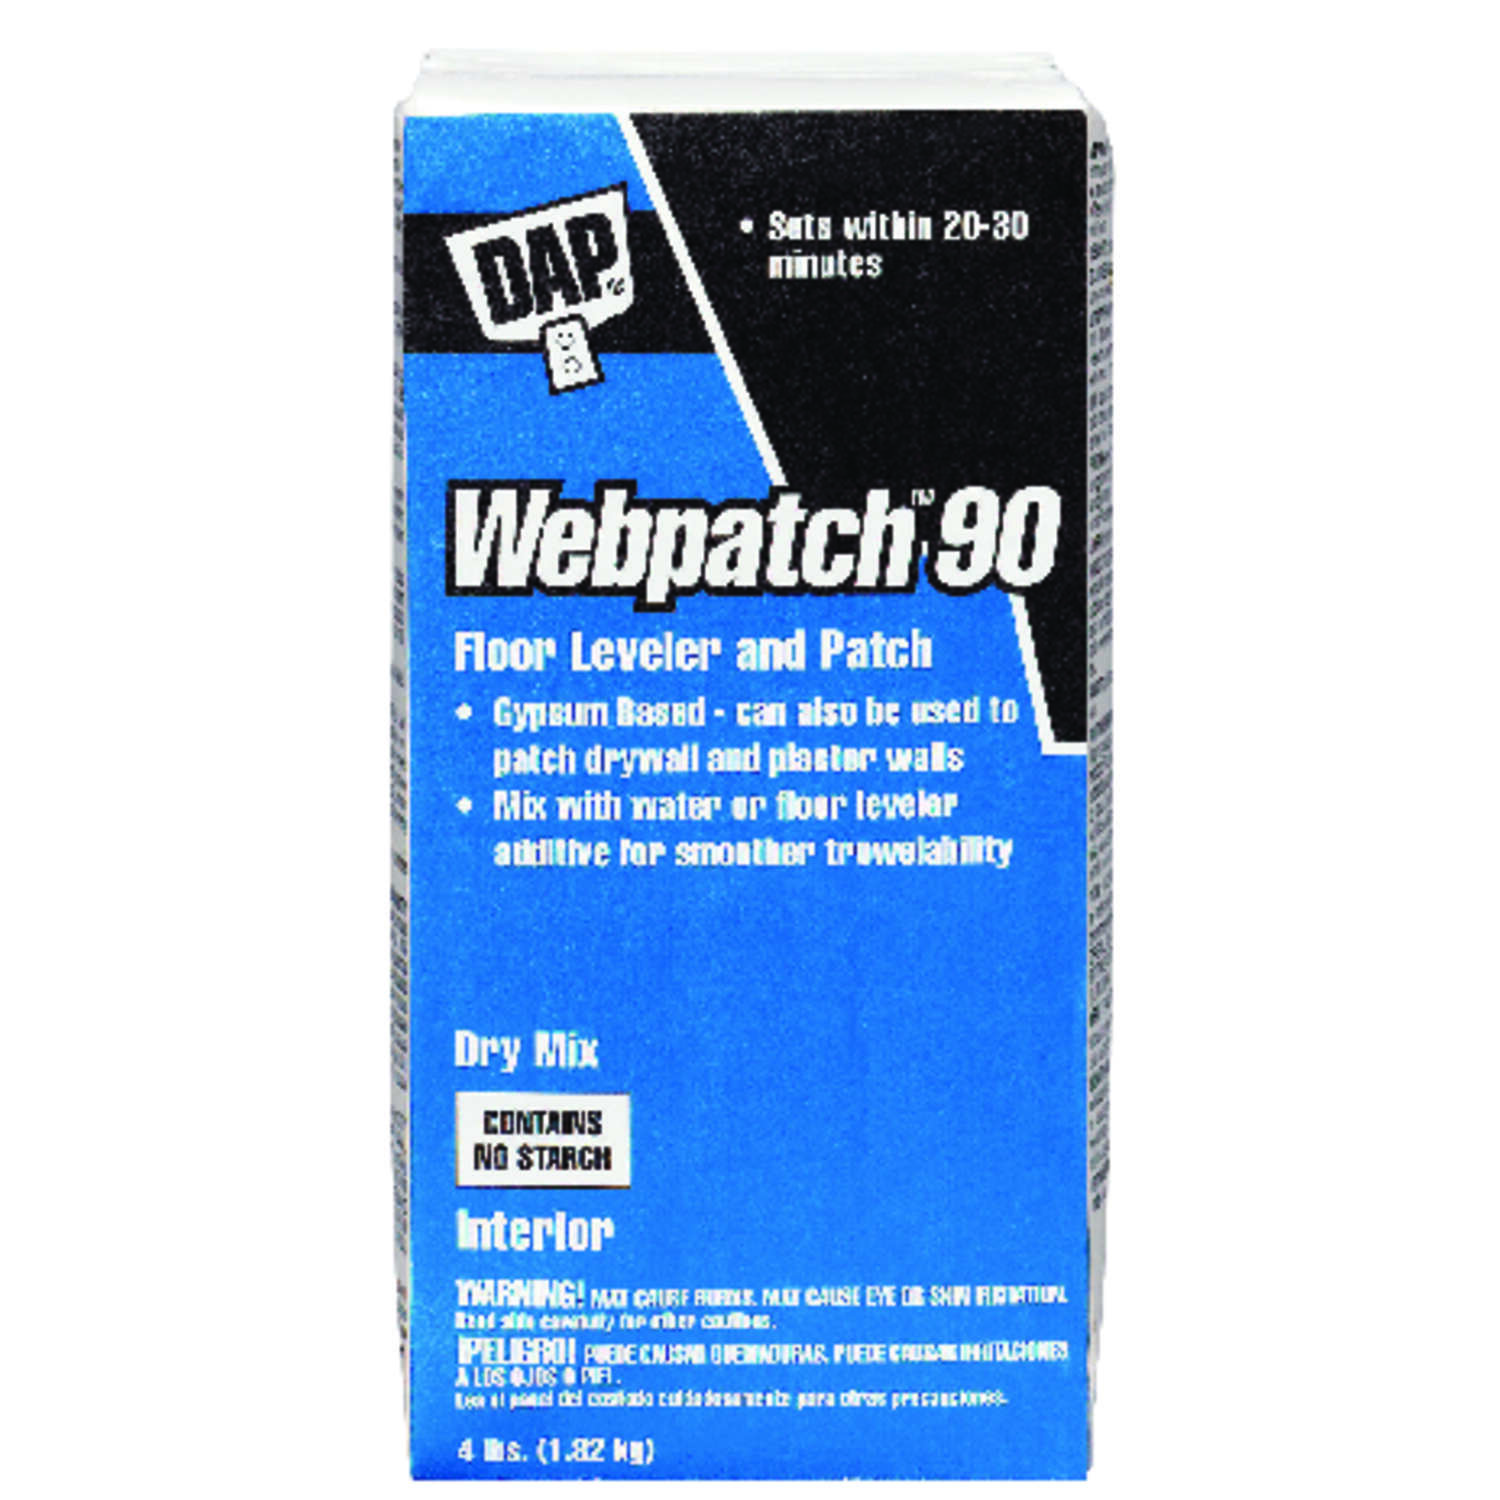 DAP  Webpatch 90  Off-White  Patch and Floor Leveler  4 lb.